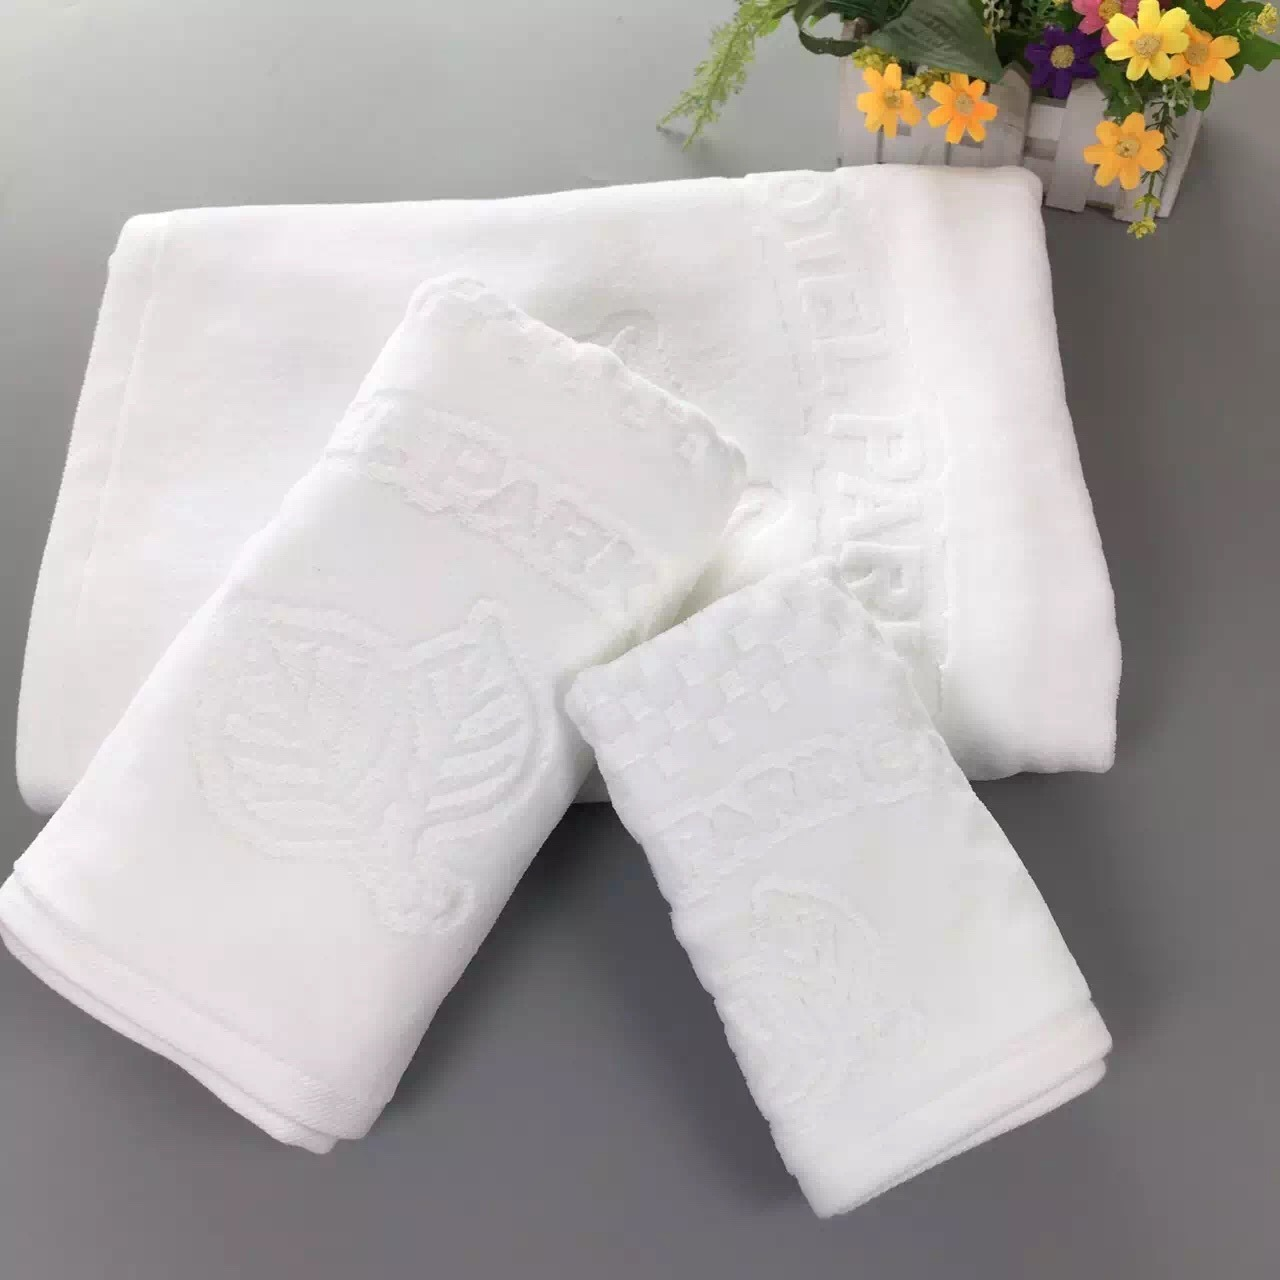 China Cheapest Promotional Wholesale Hotel Velour Bath Towel - China ...